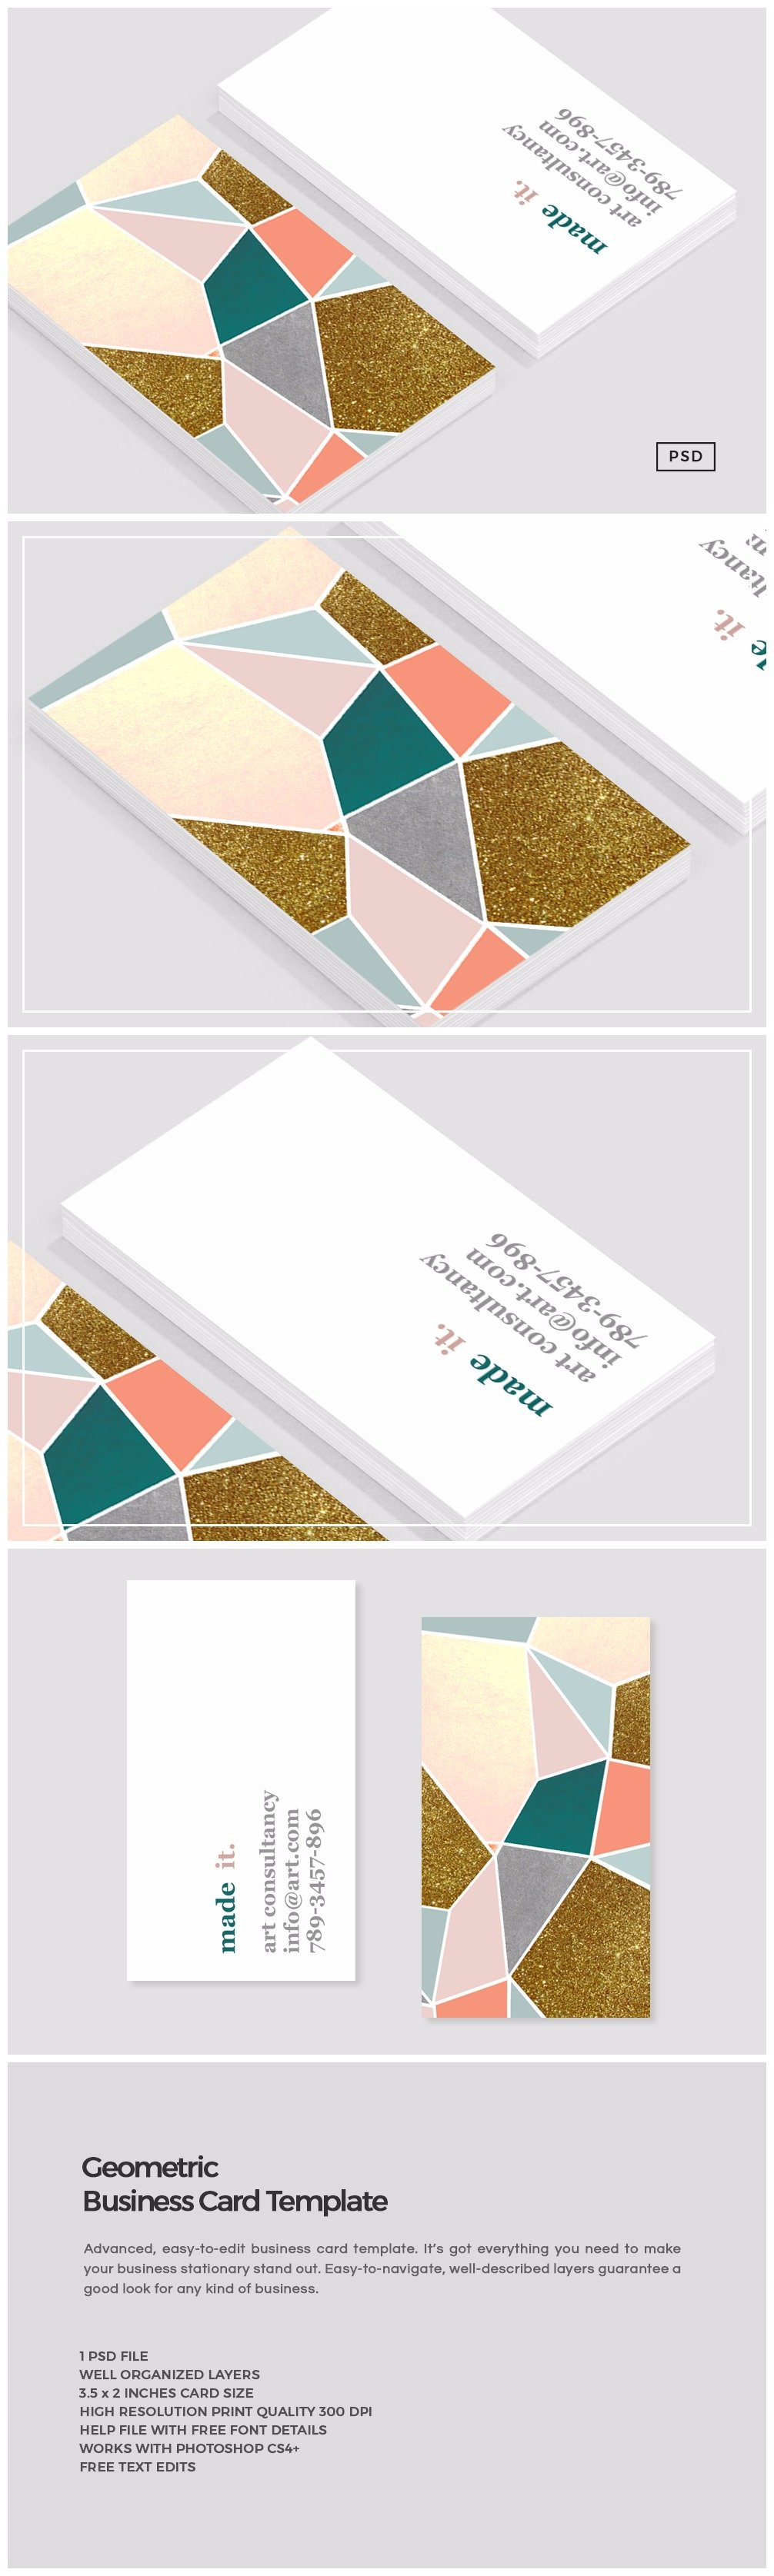 Shutterfly business cards gallery business card template business card star make business cards images card design and card awesome shutterfly business cards picture reheart Choice Image